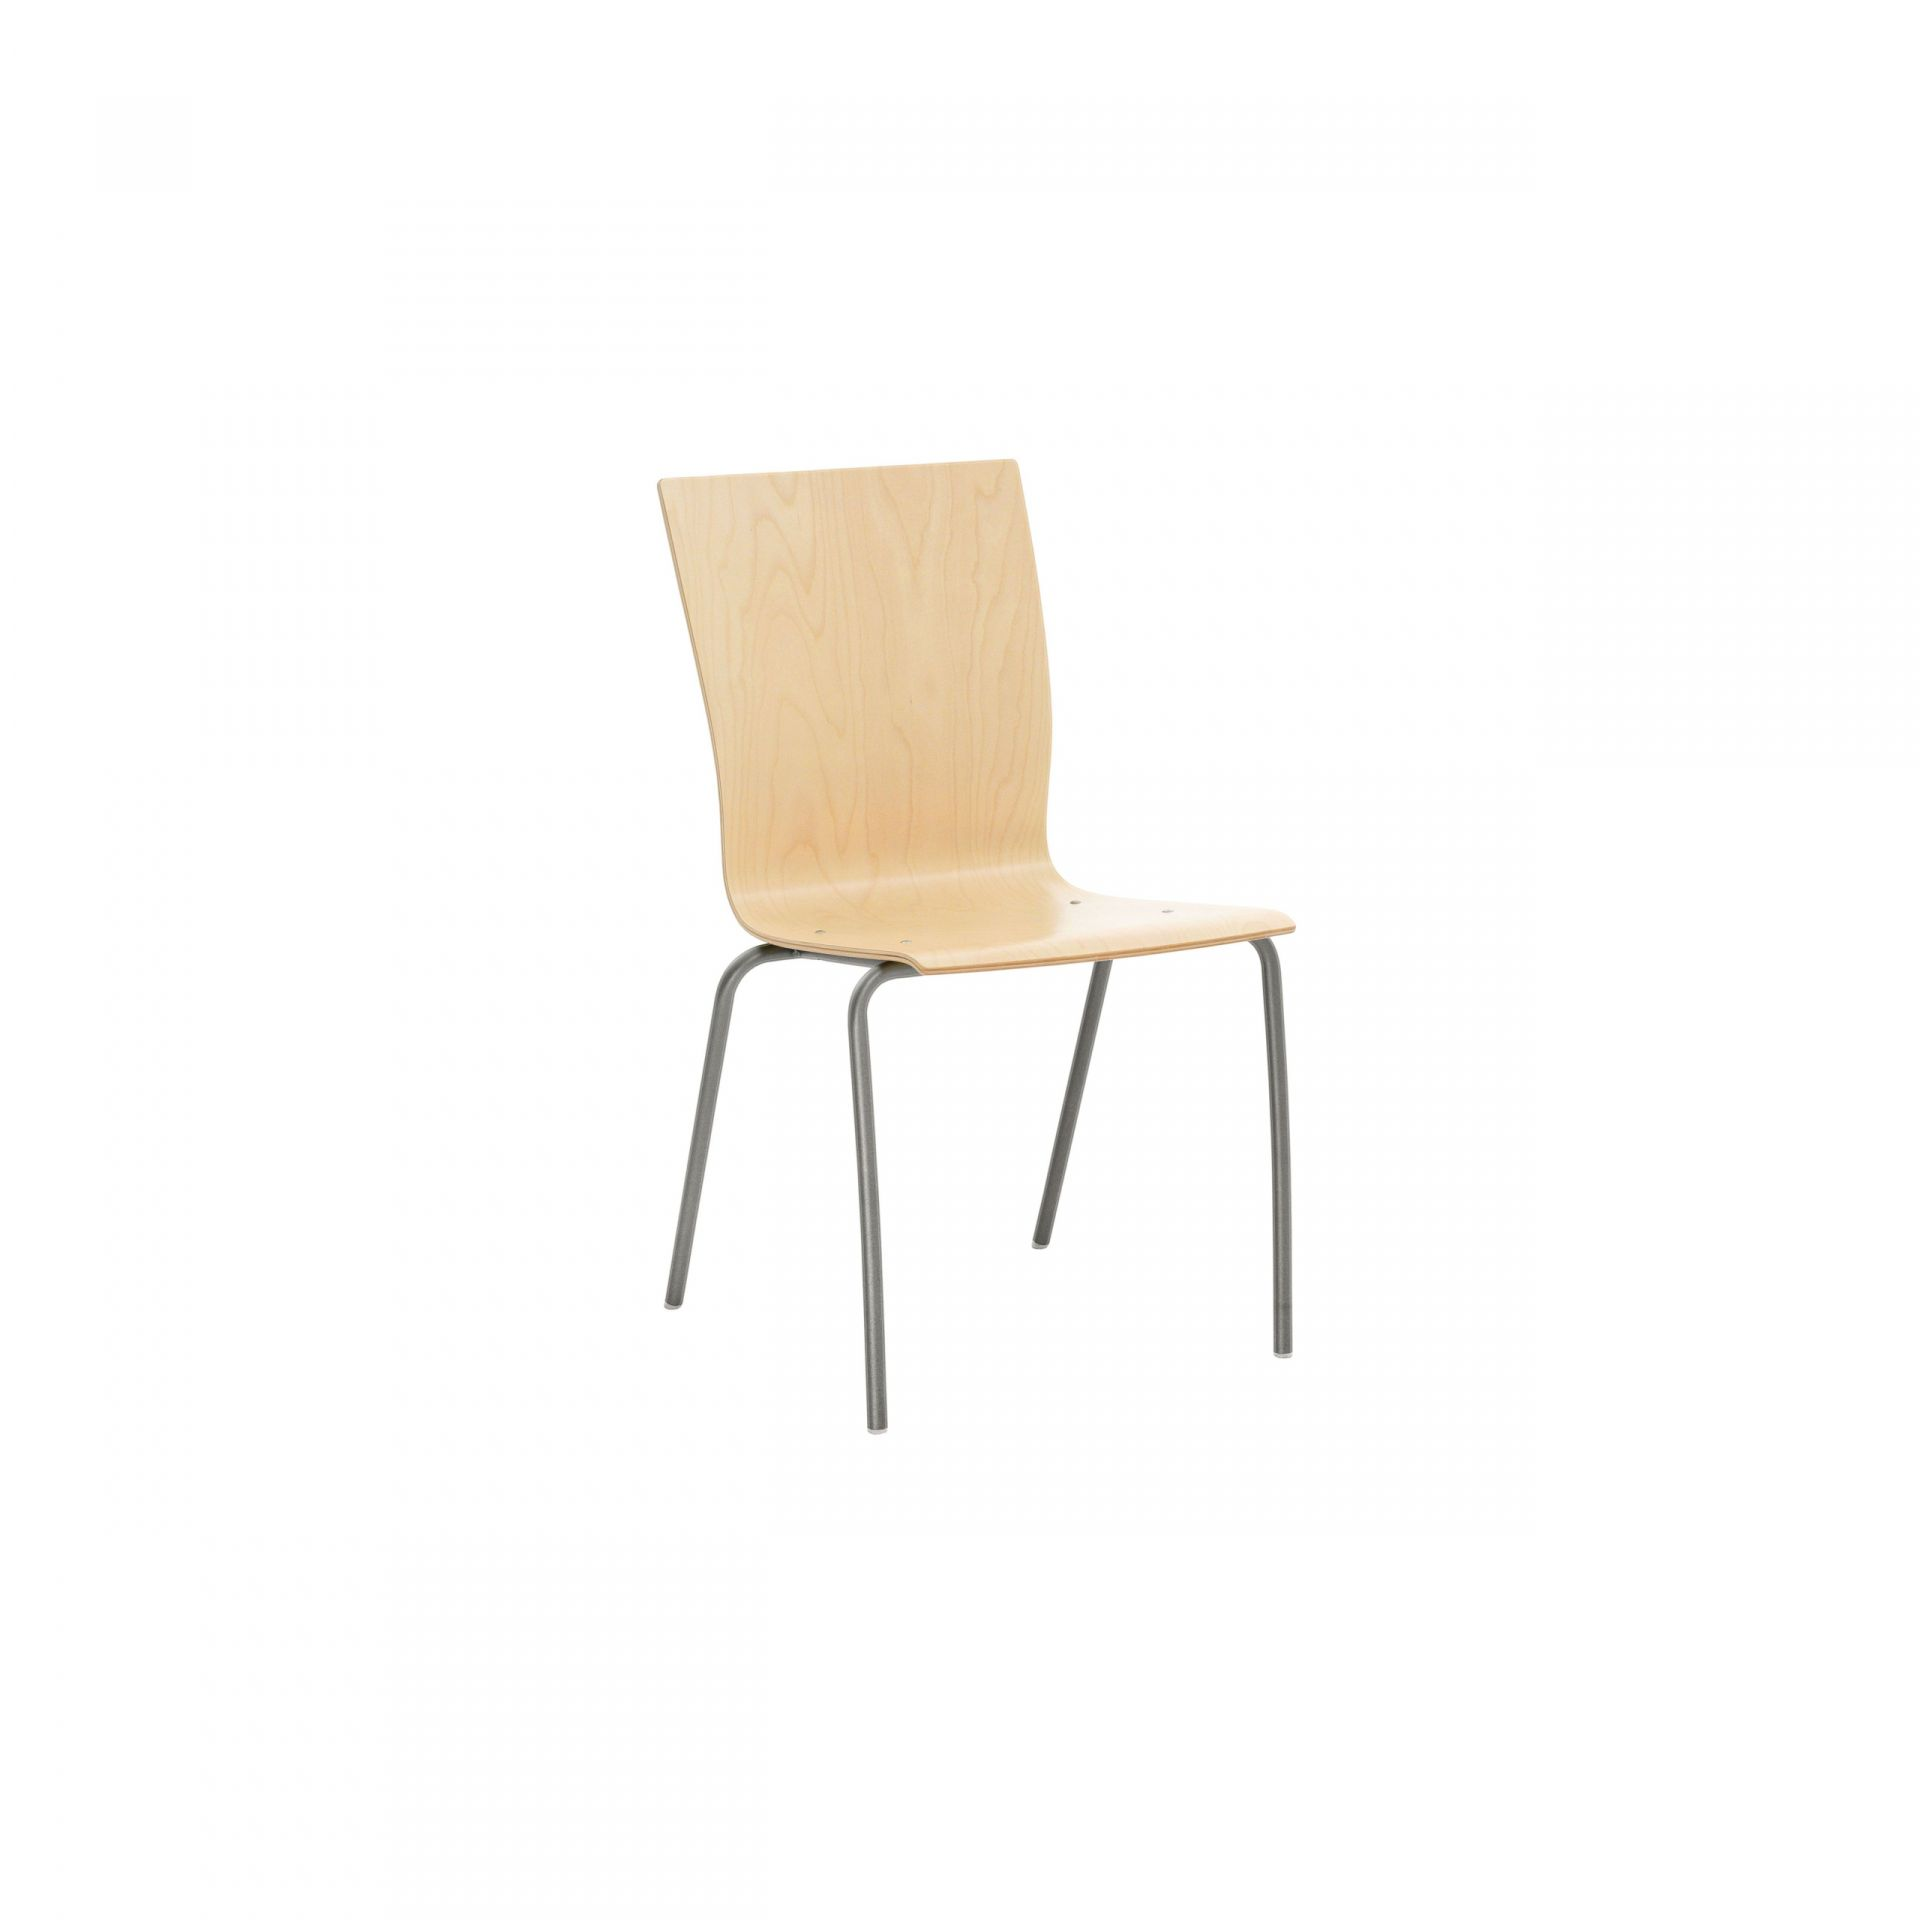 Sit Chair with metal legs